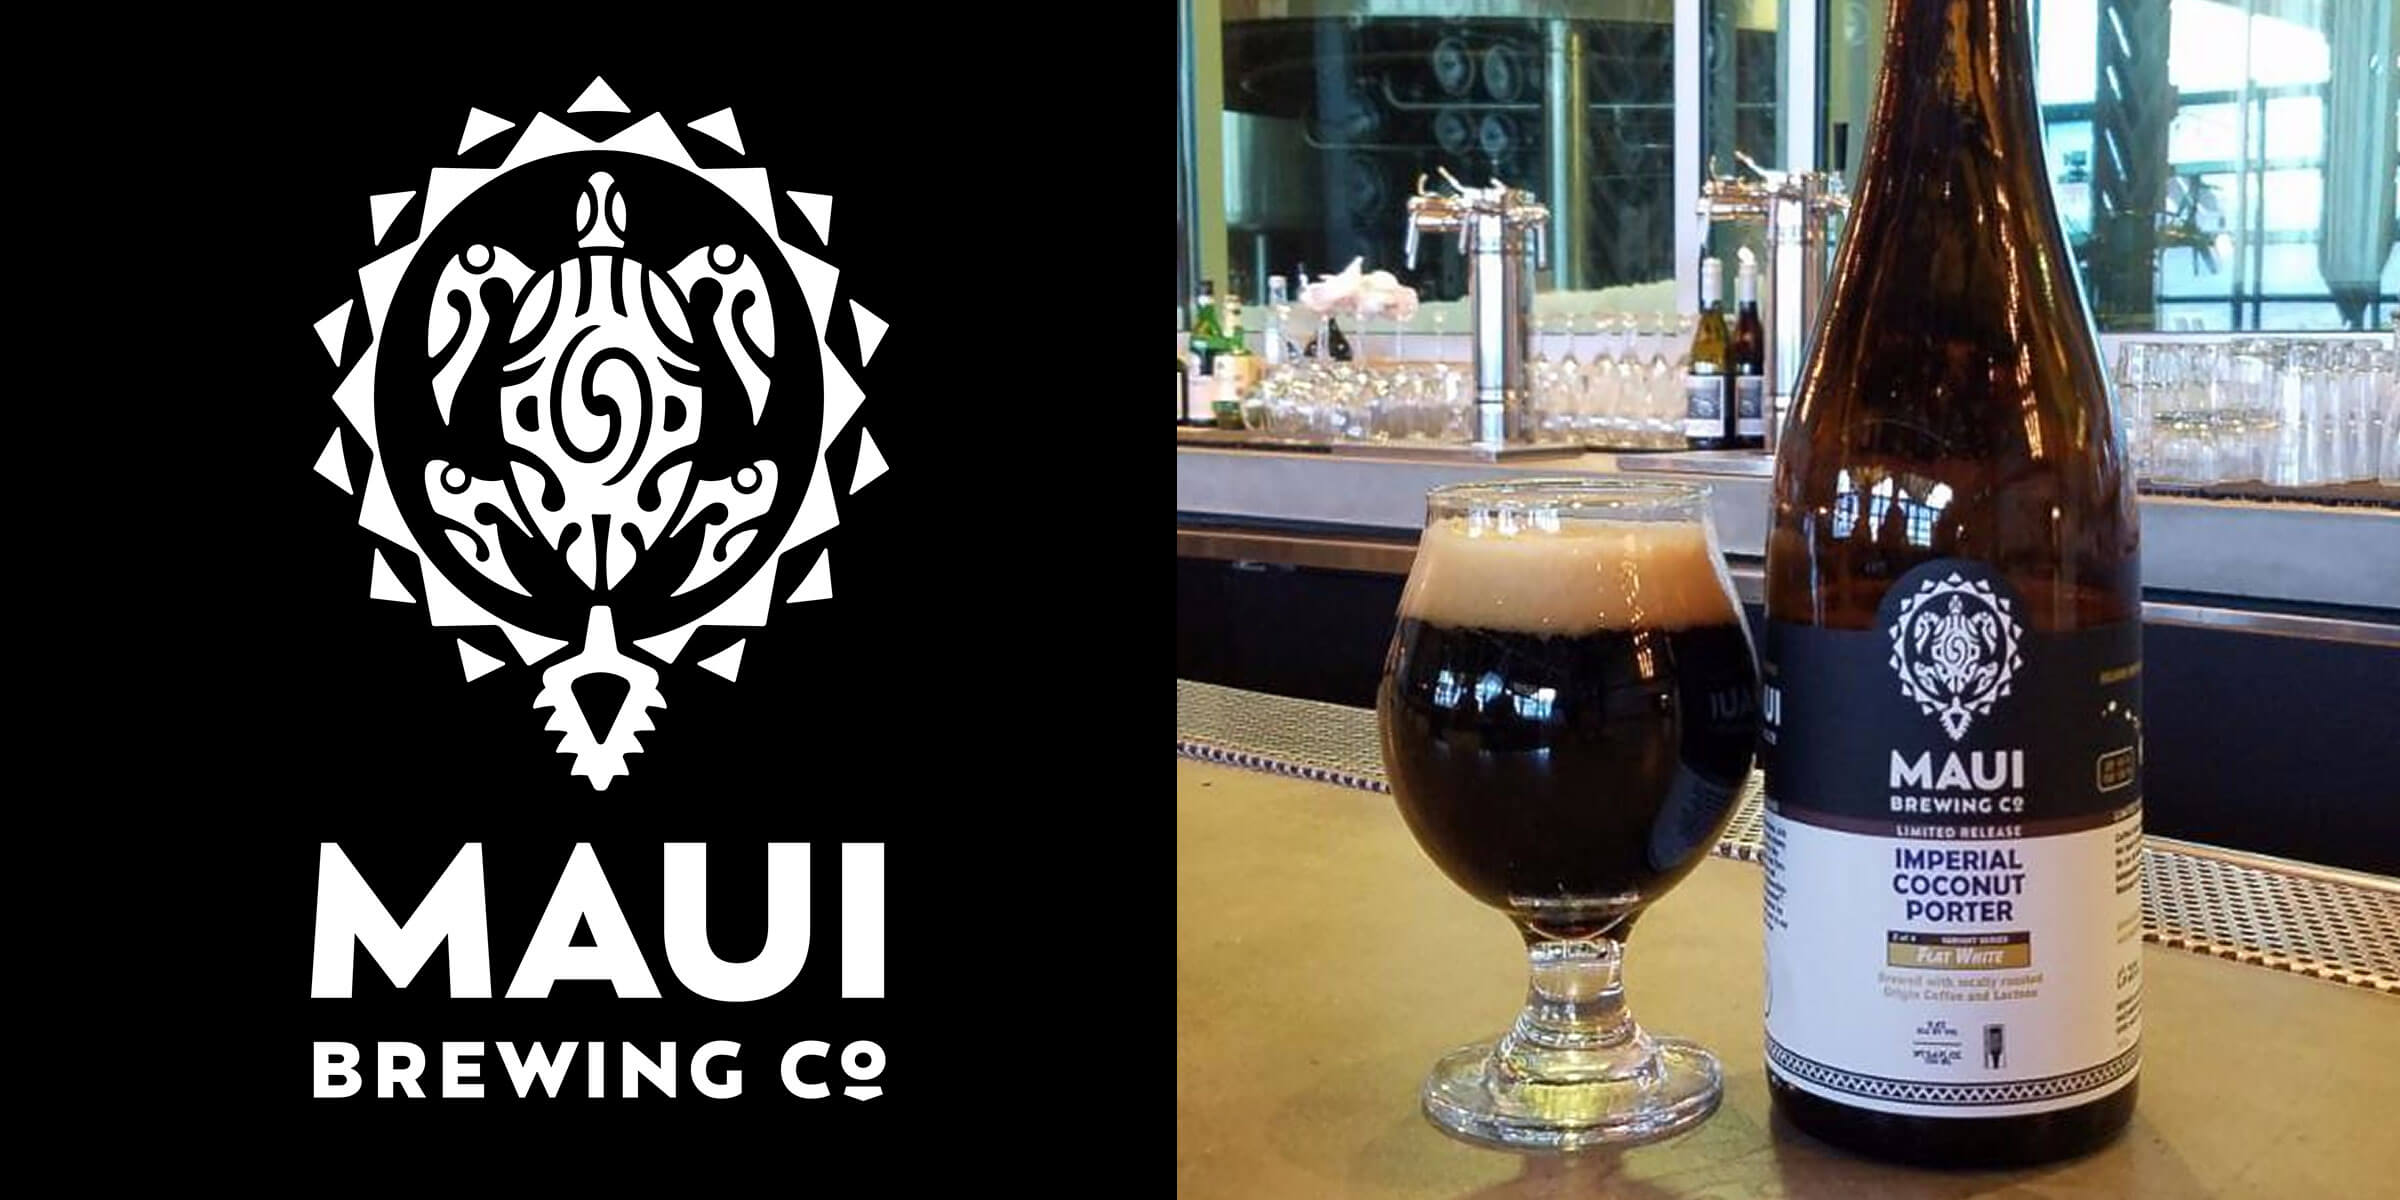 Maui Brewing Company Releases Flat White Imperial Coconut Porter